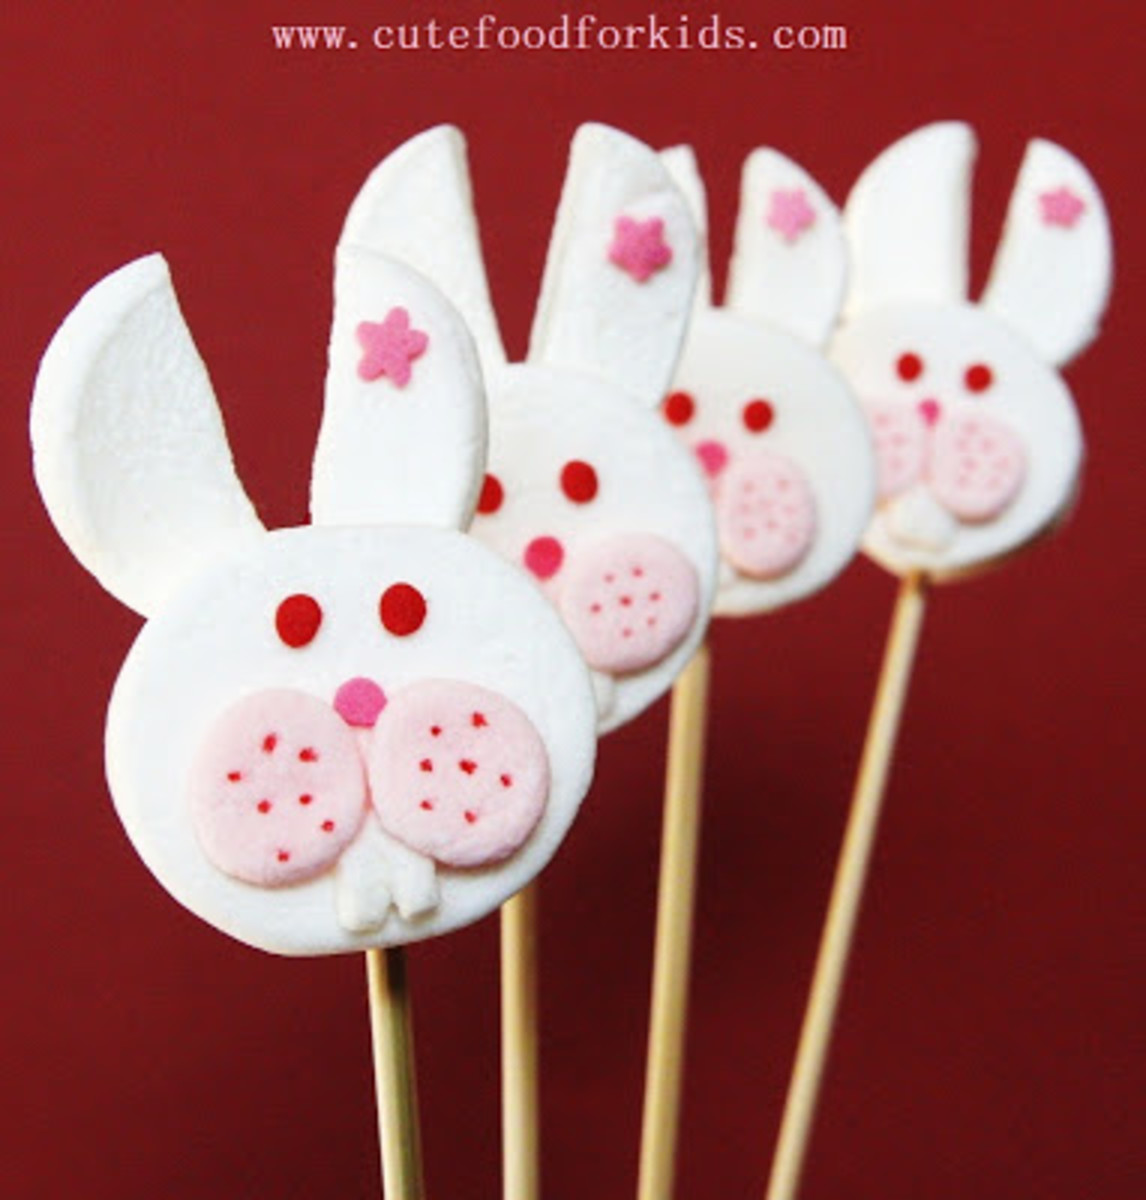 These bunny pops are adorable.  I want to eat them right now.